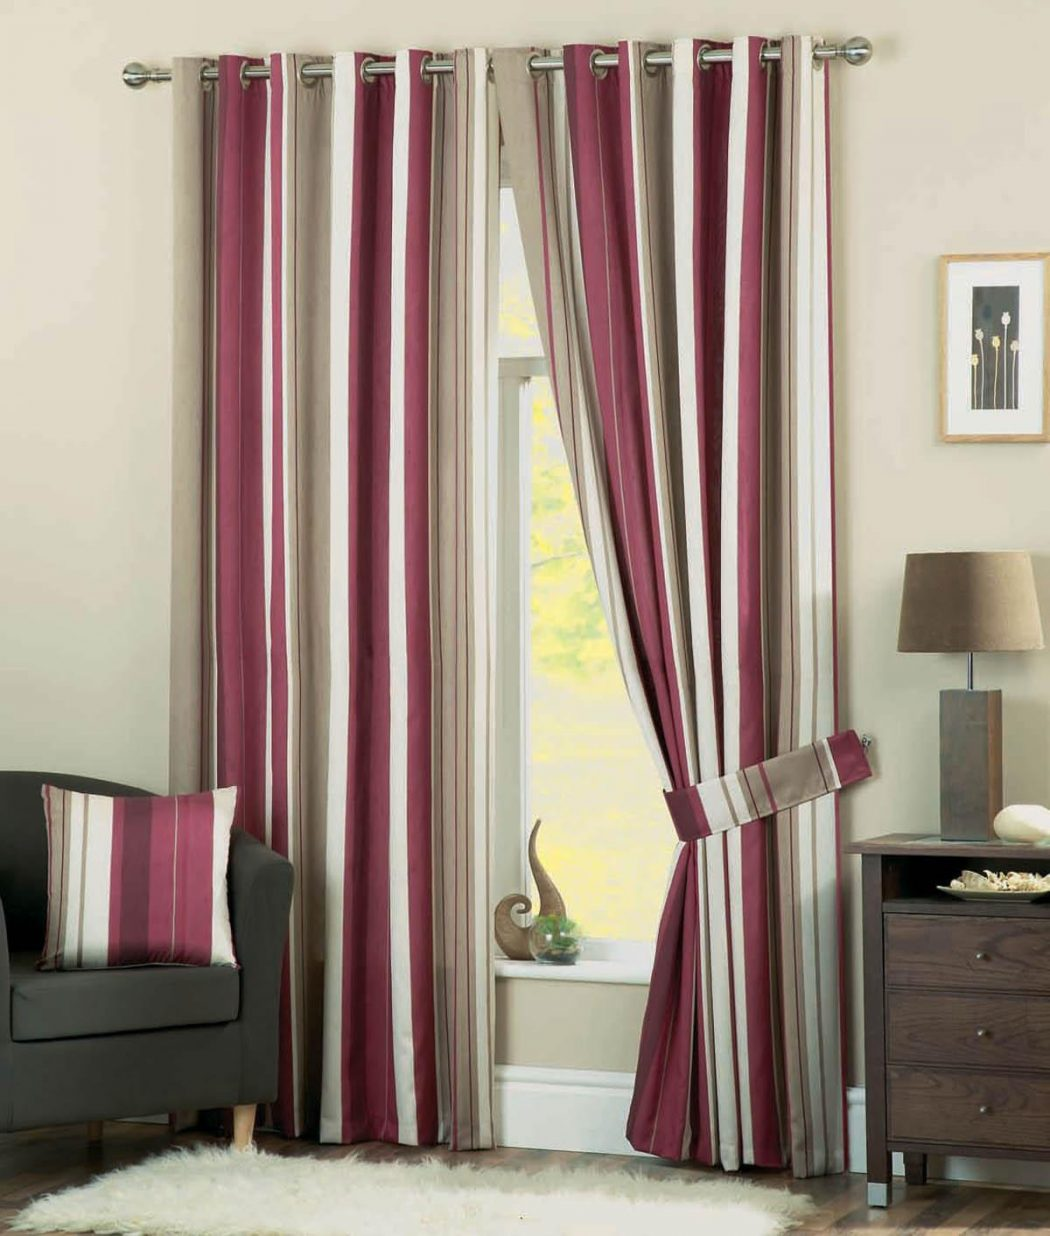 Whitworth-Claret 20 Hottest Curtain Designs for 2017